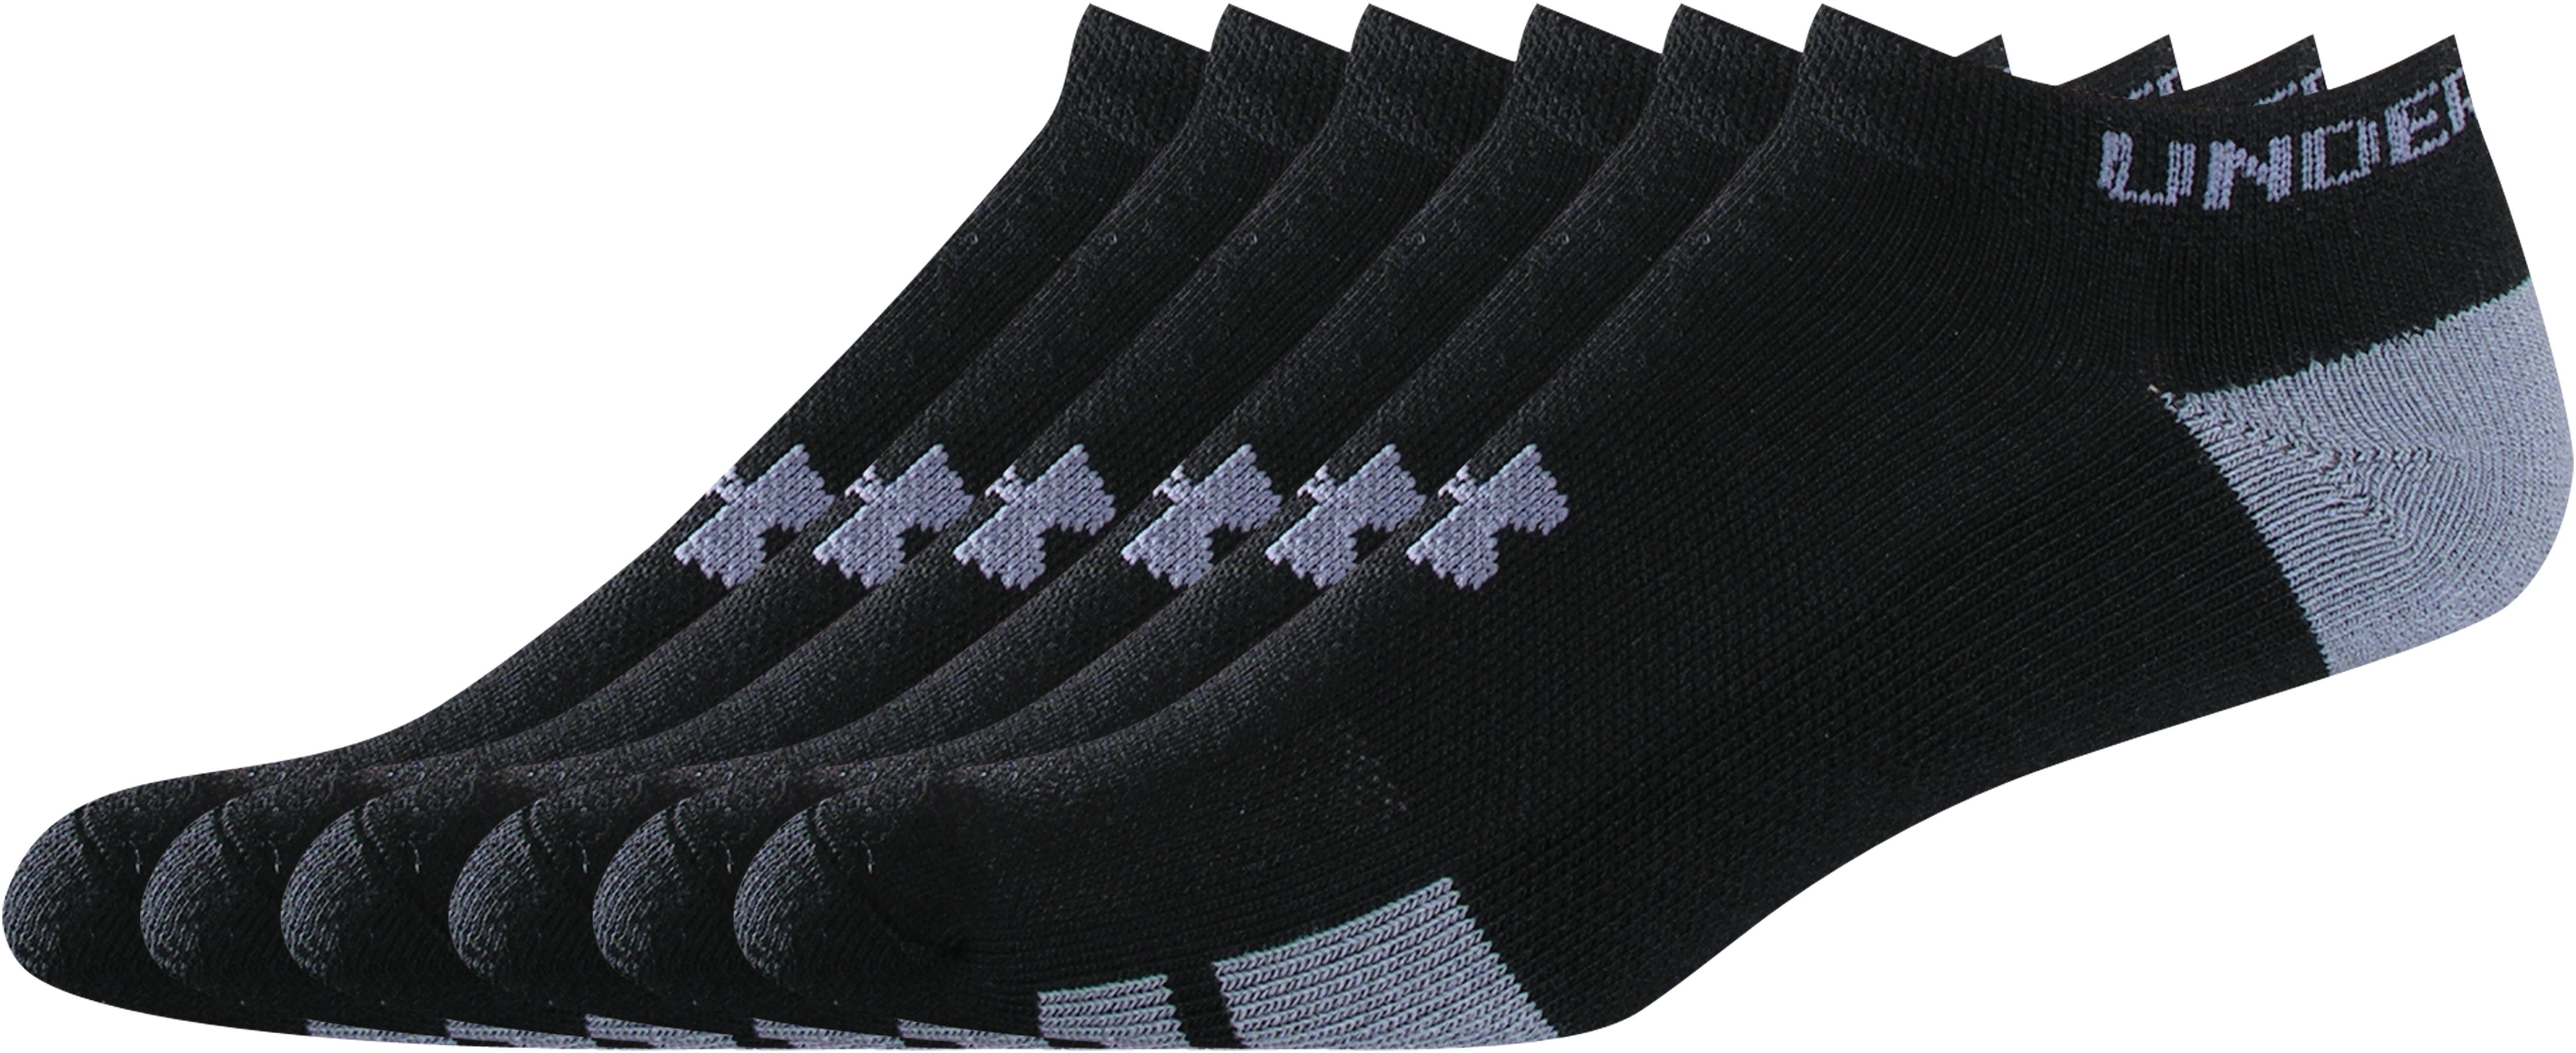 Kids' UA Resistor No Show Socks 6-Pack, Black